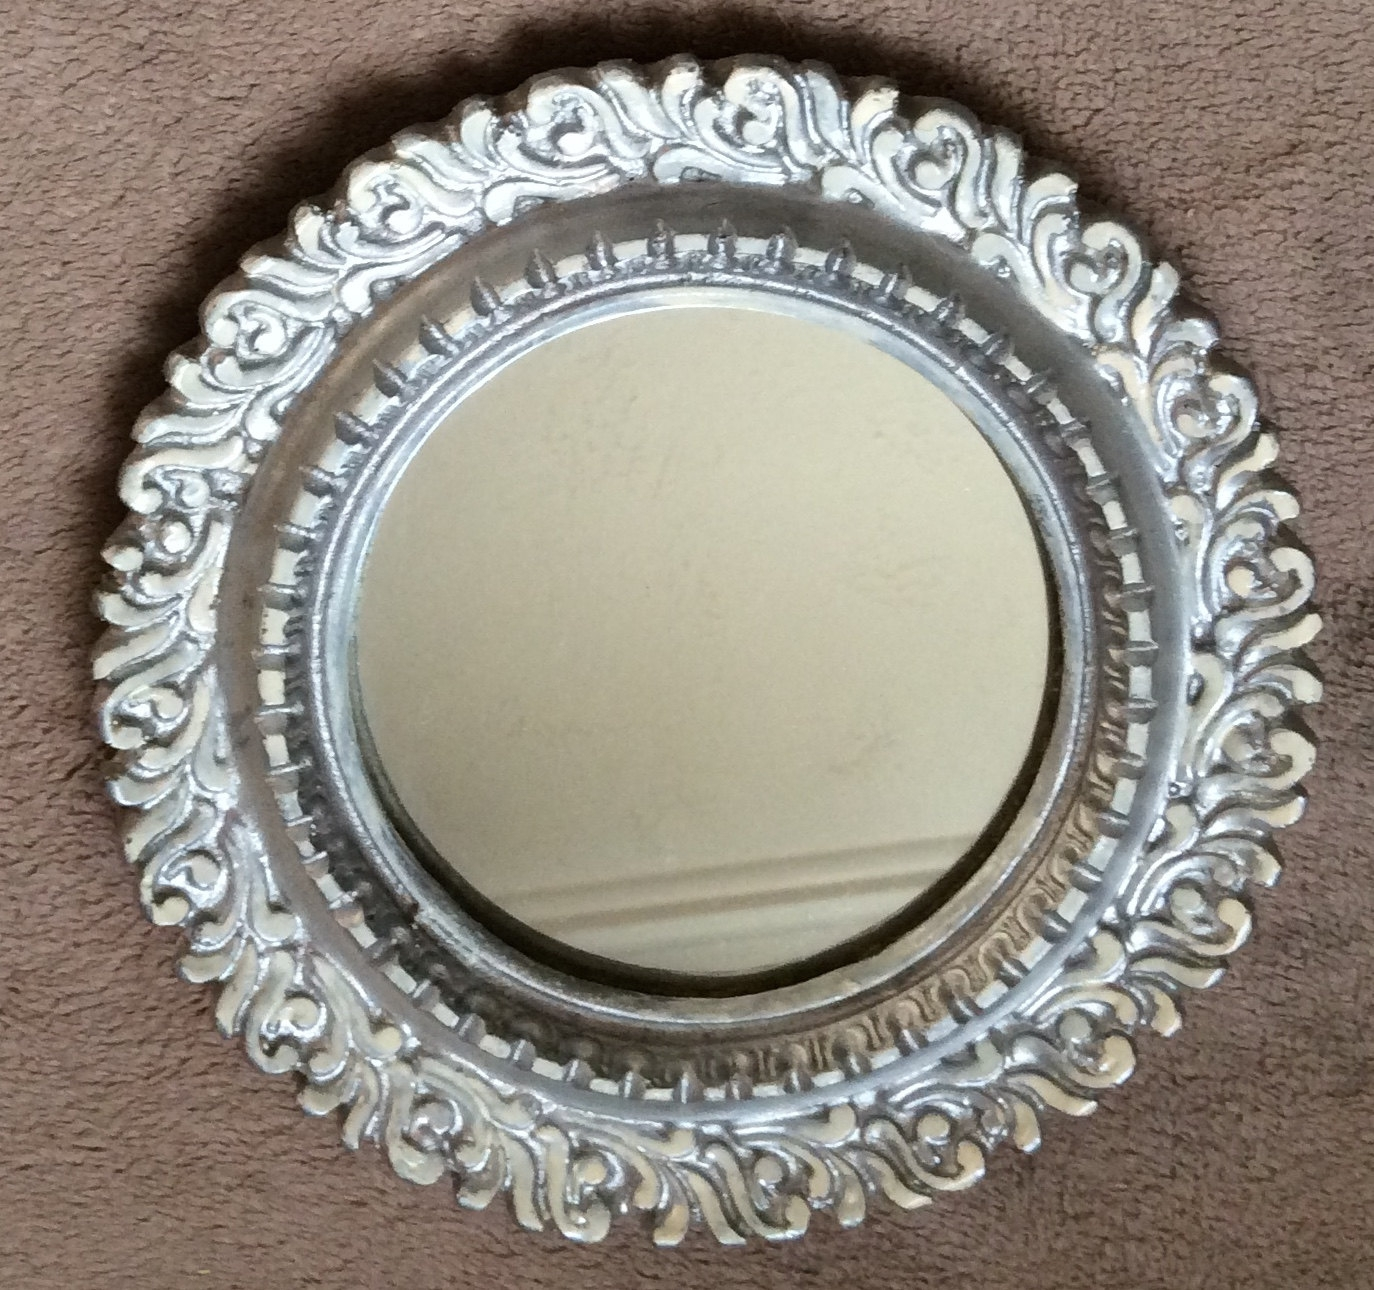 Vintage Ornate Round Mirror With Silver Painted Finish Home Decor Regarding Ornate Round Mirror (View 8 of 15)